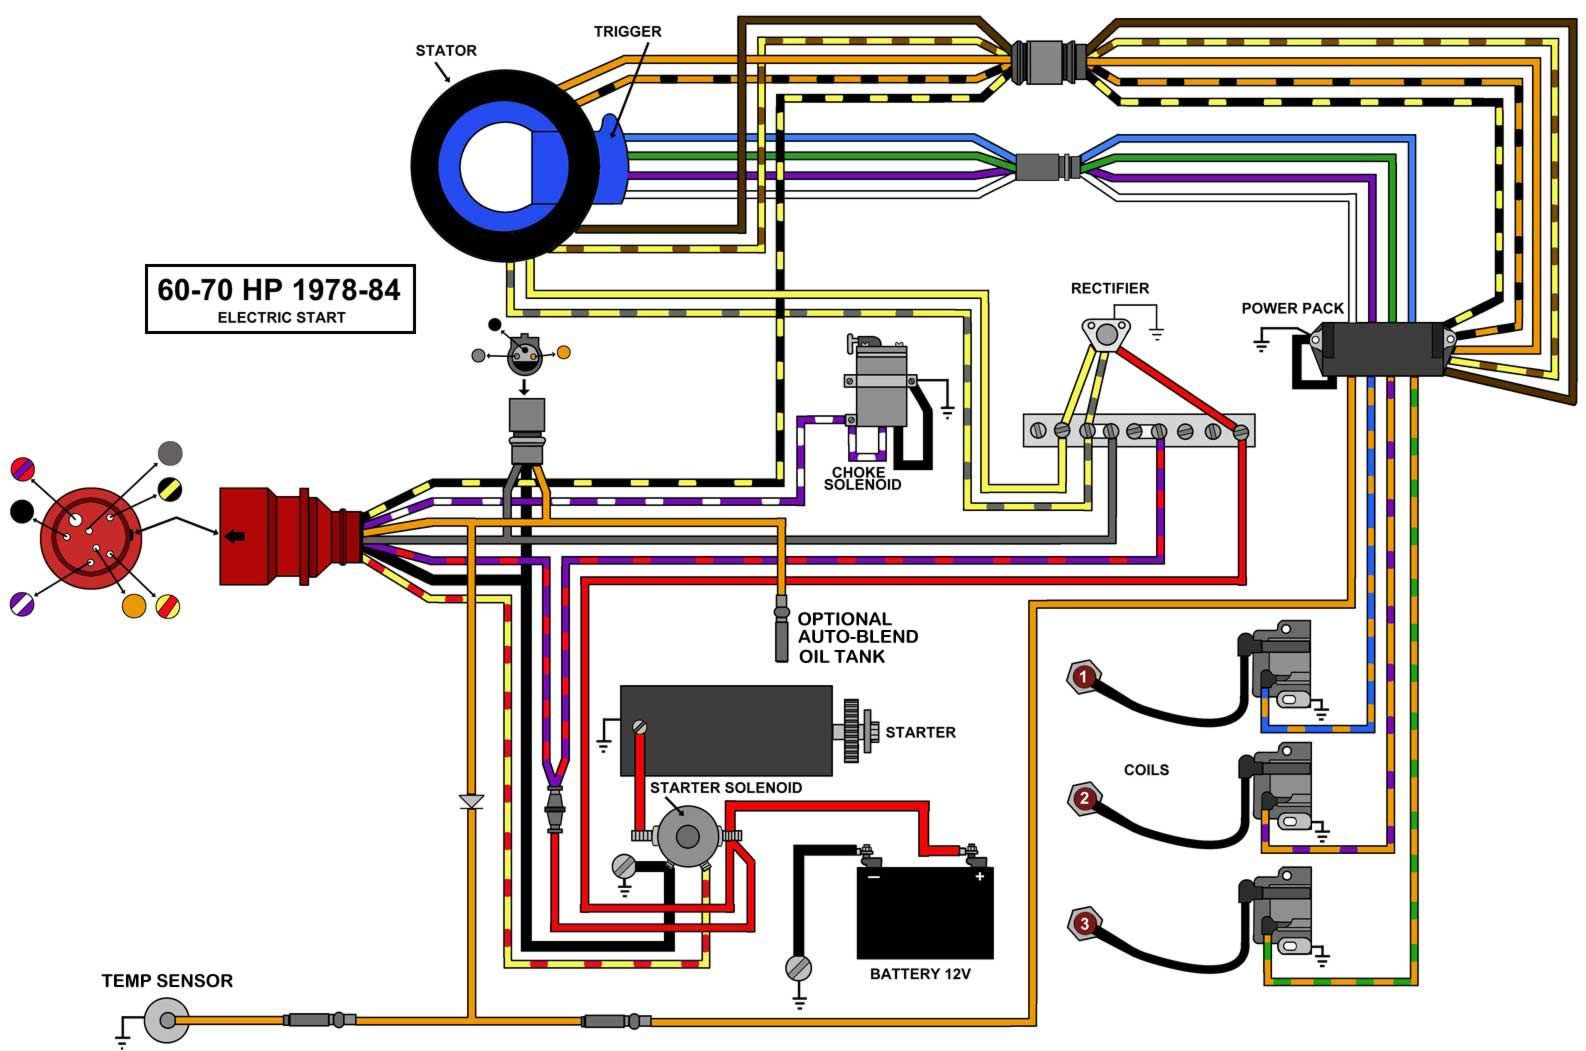 wiring diagram 1997 50 hp evinrude wiring schematic diagram evinrude johnson outboard wiring